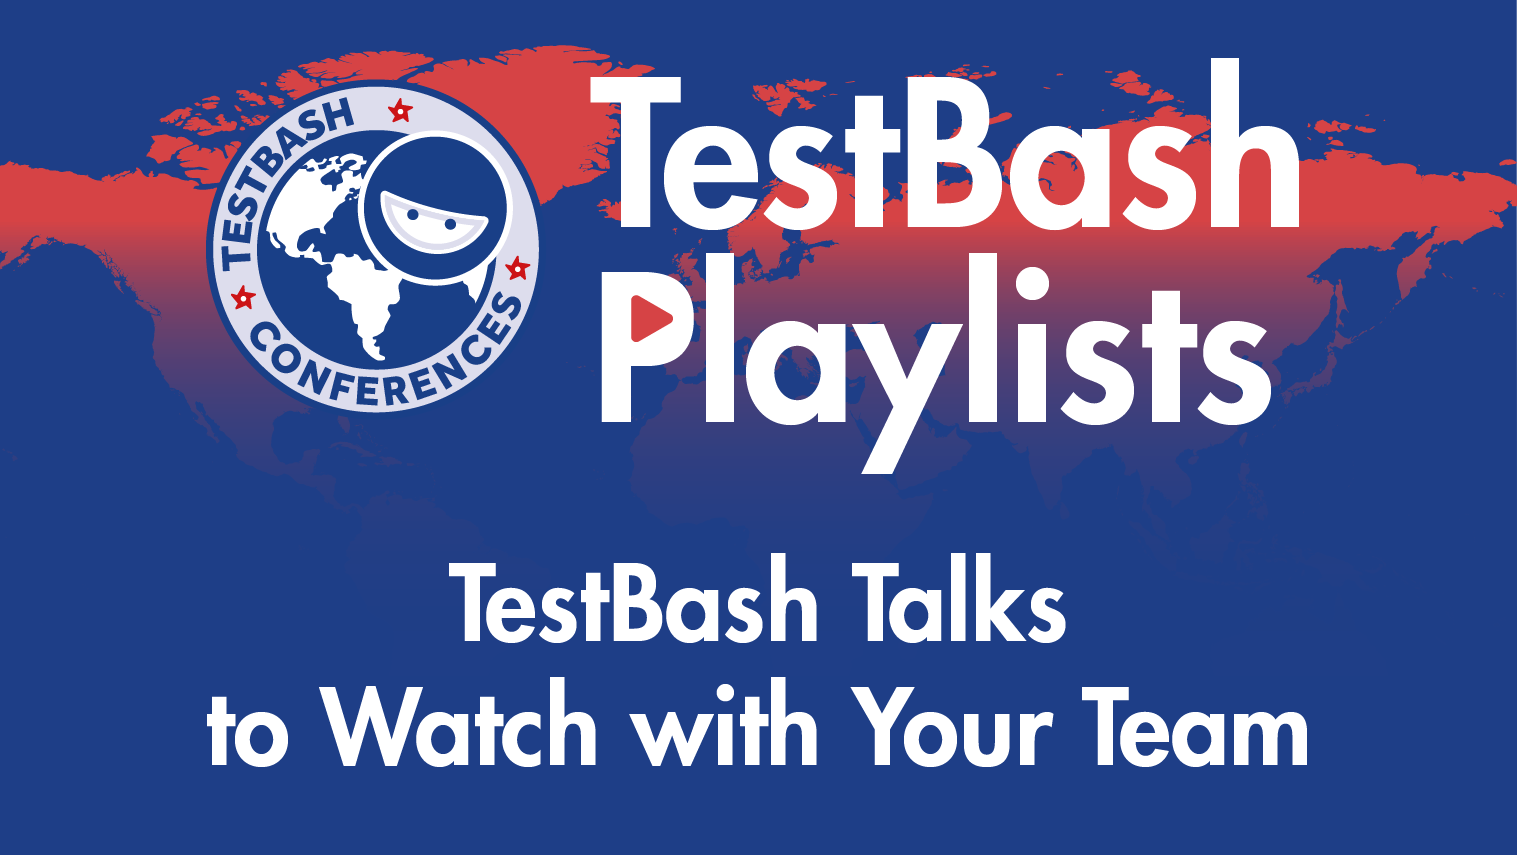 TestBash Playlists - TestBash Talks To Watch With Your Team